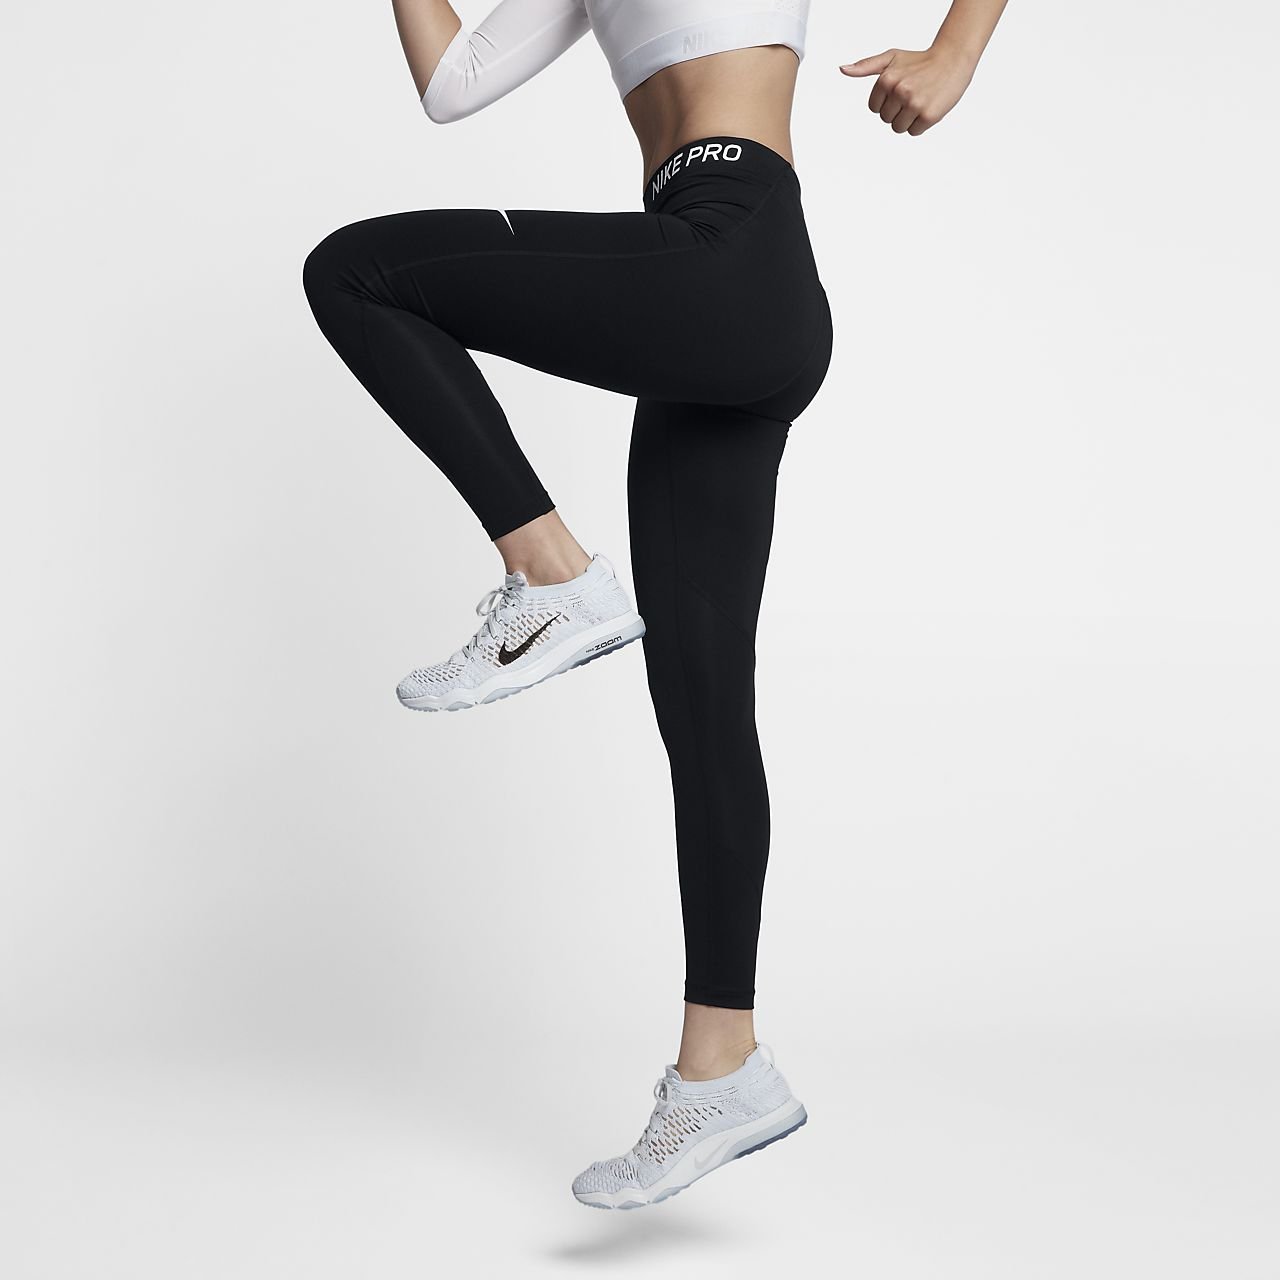 523a37b3fbefe Nike Pro Women's Mid-Rise Training Tights. Nike.com